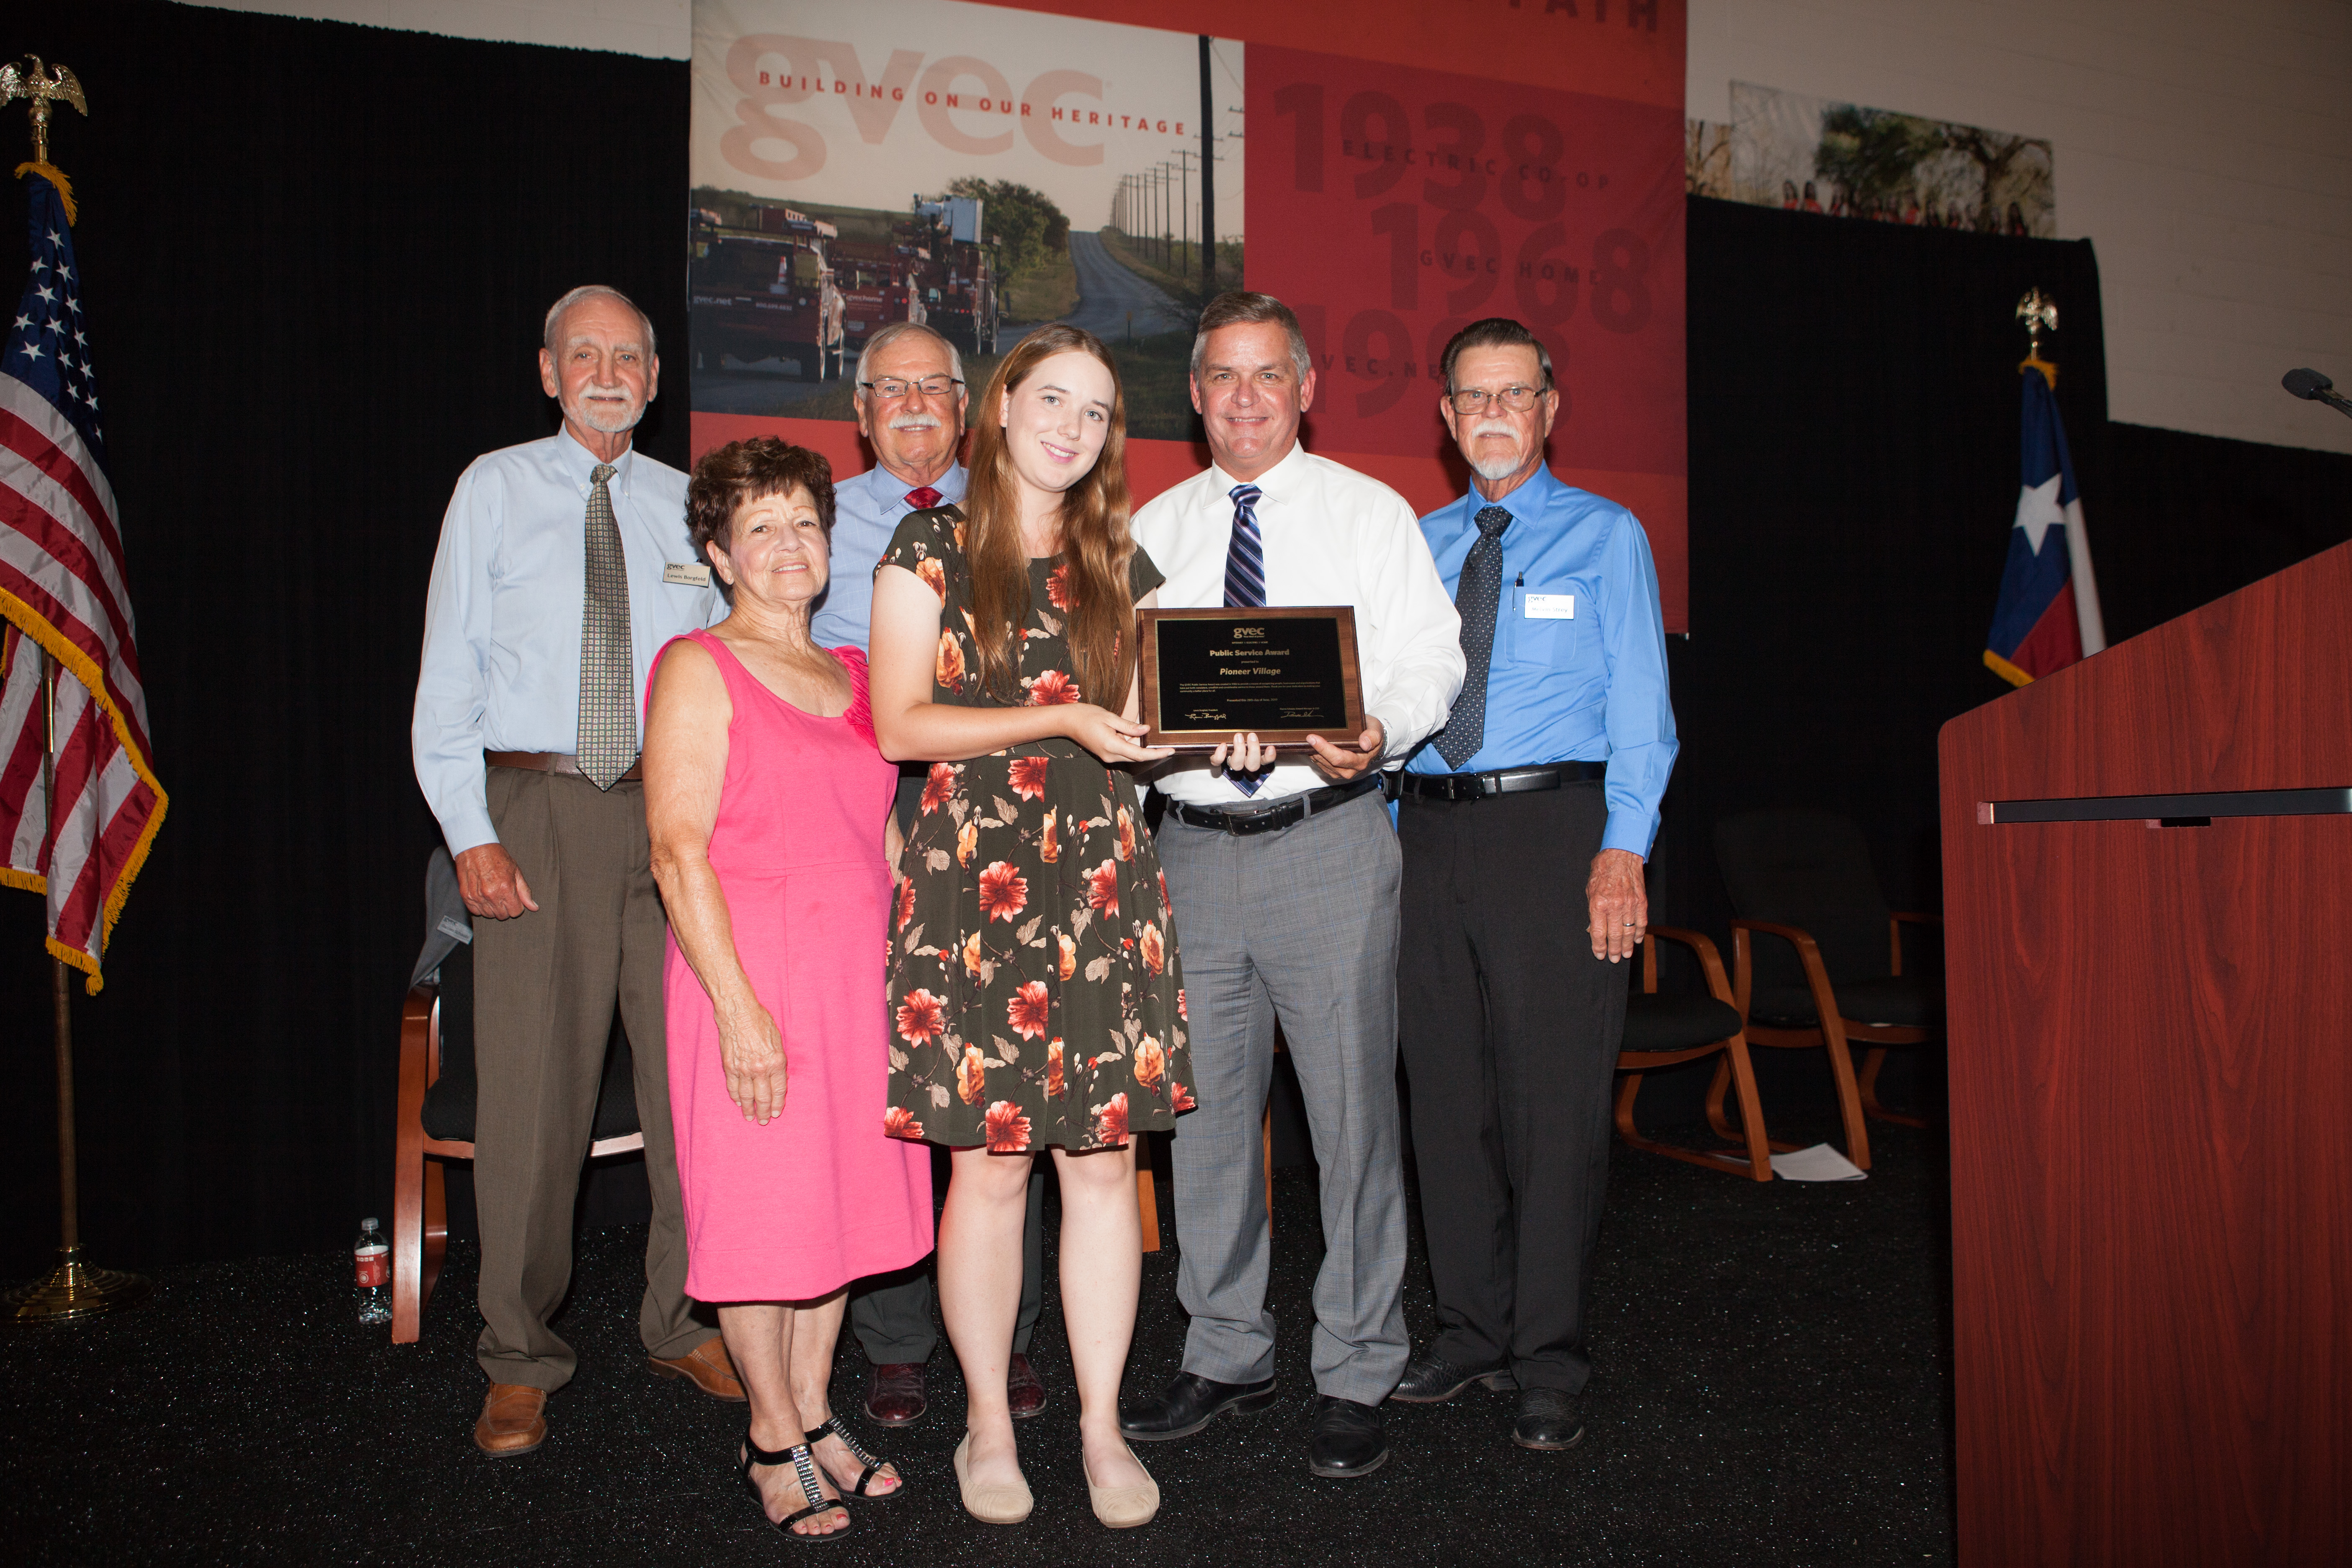 Pioneer Village is presented with GVEC's Public Service Award for 2019